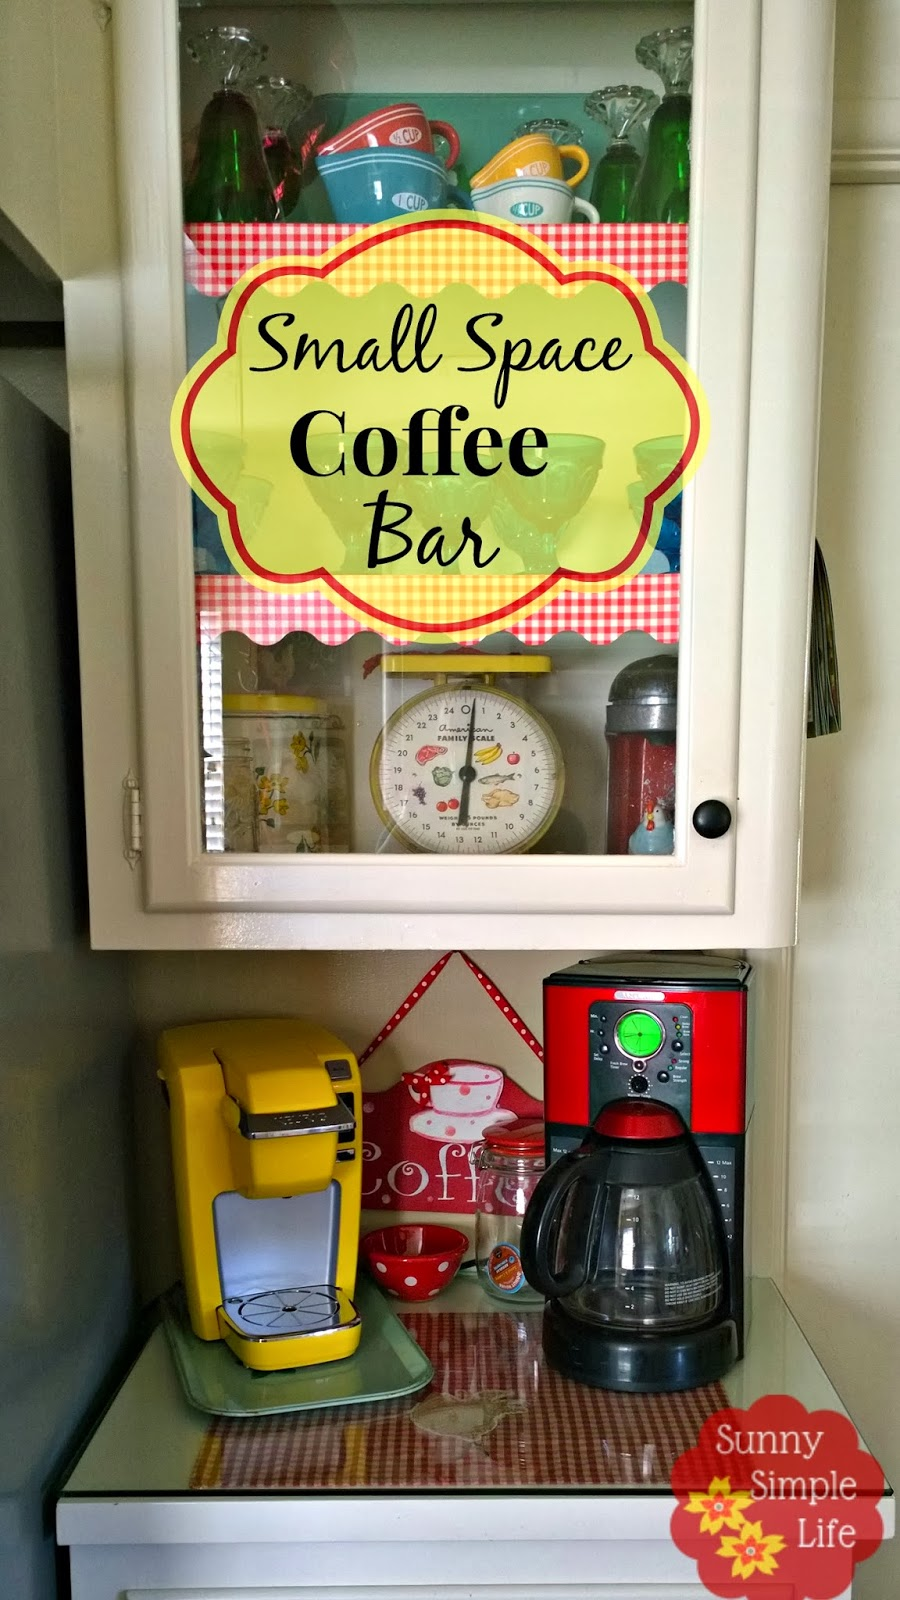 Sunny Simple Life: Small Space Coffee Bar